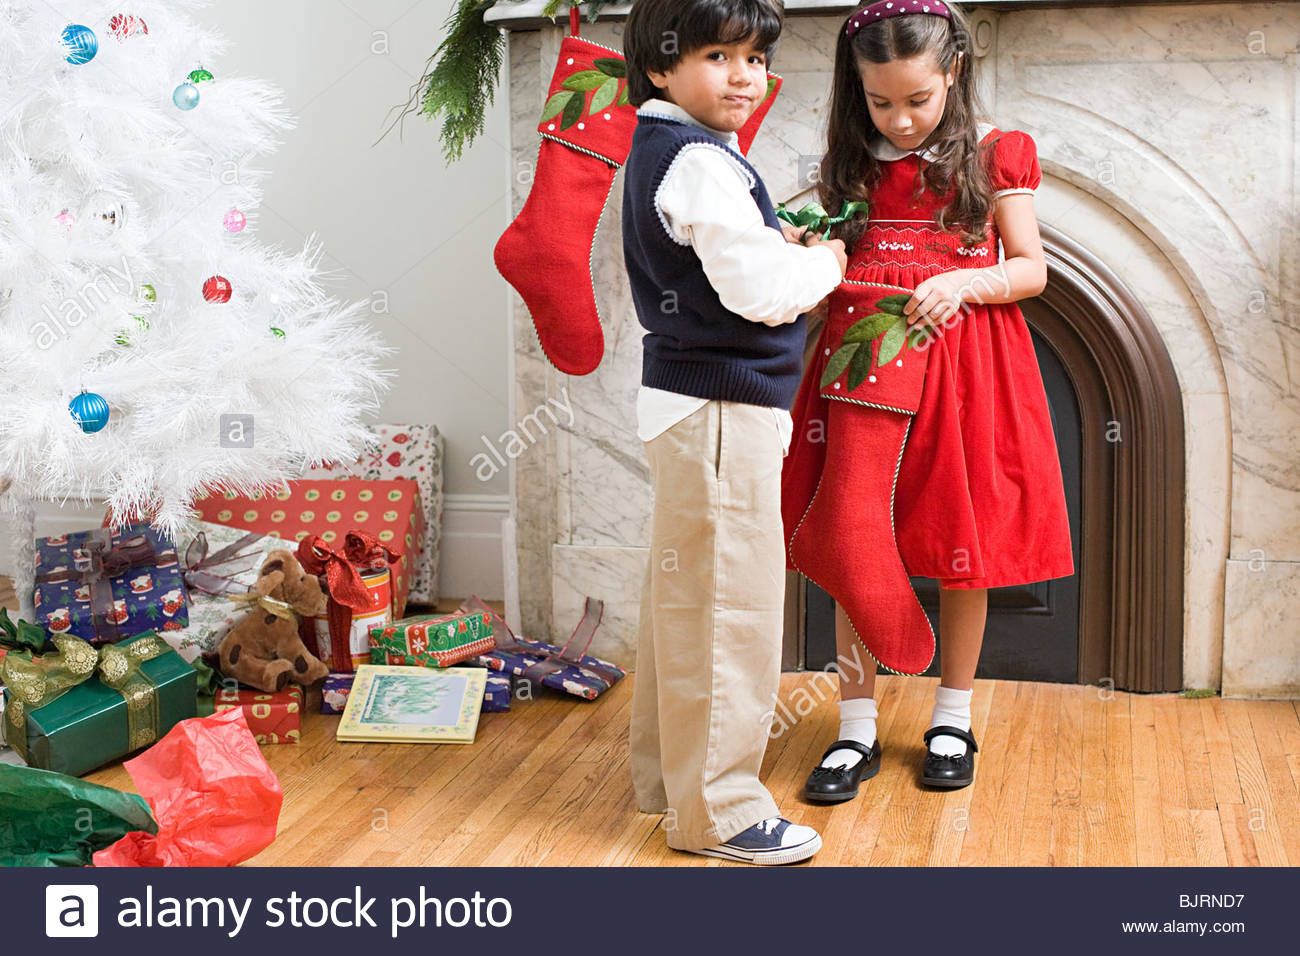 Children holding a stocking - Stock Image